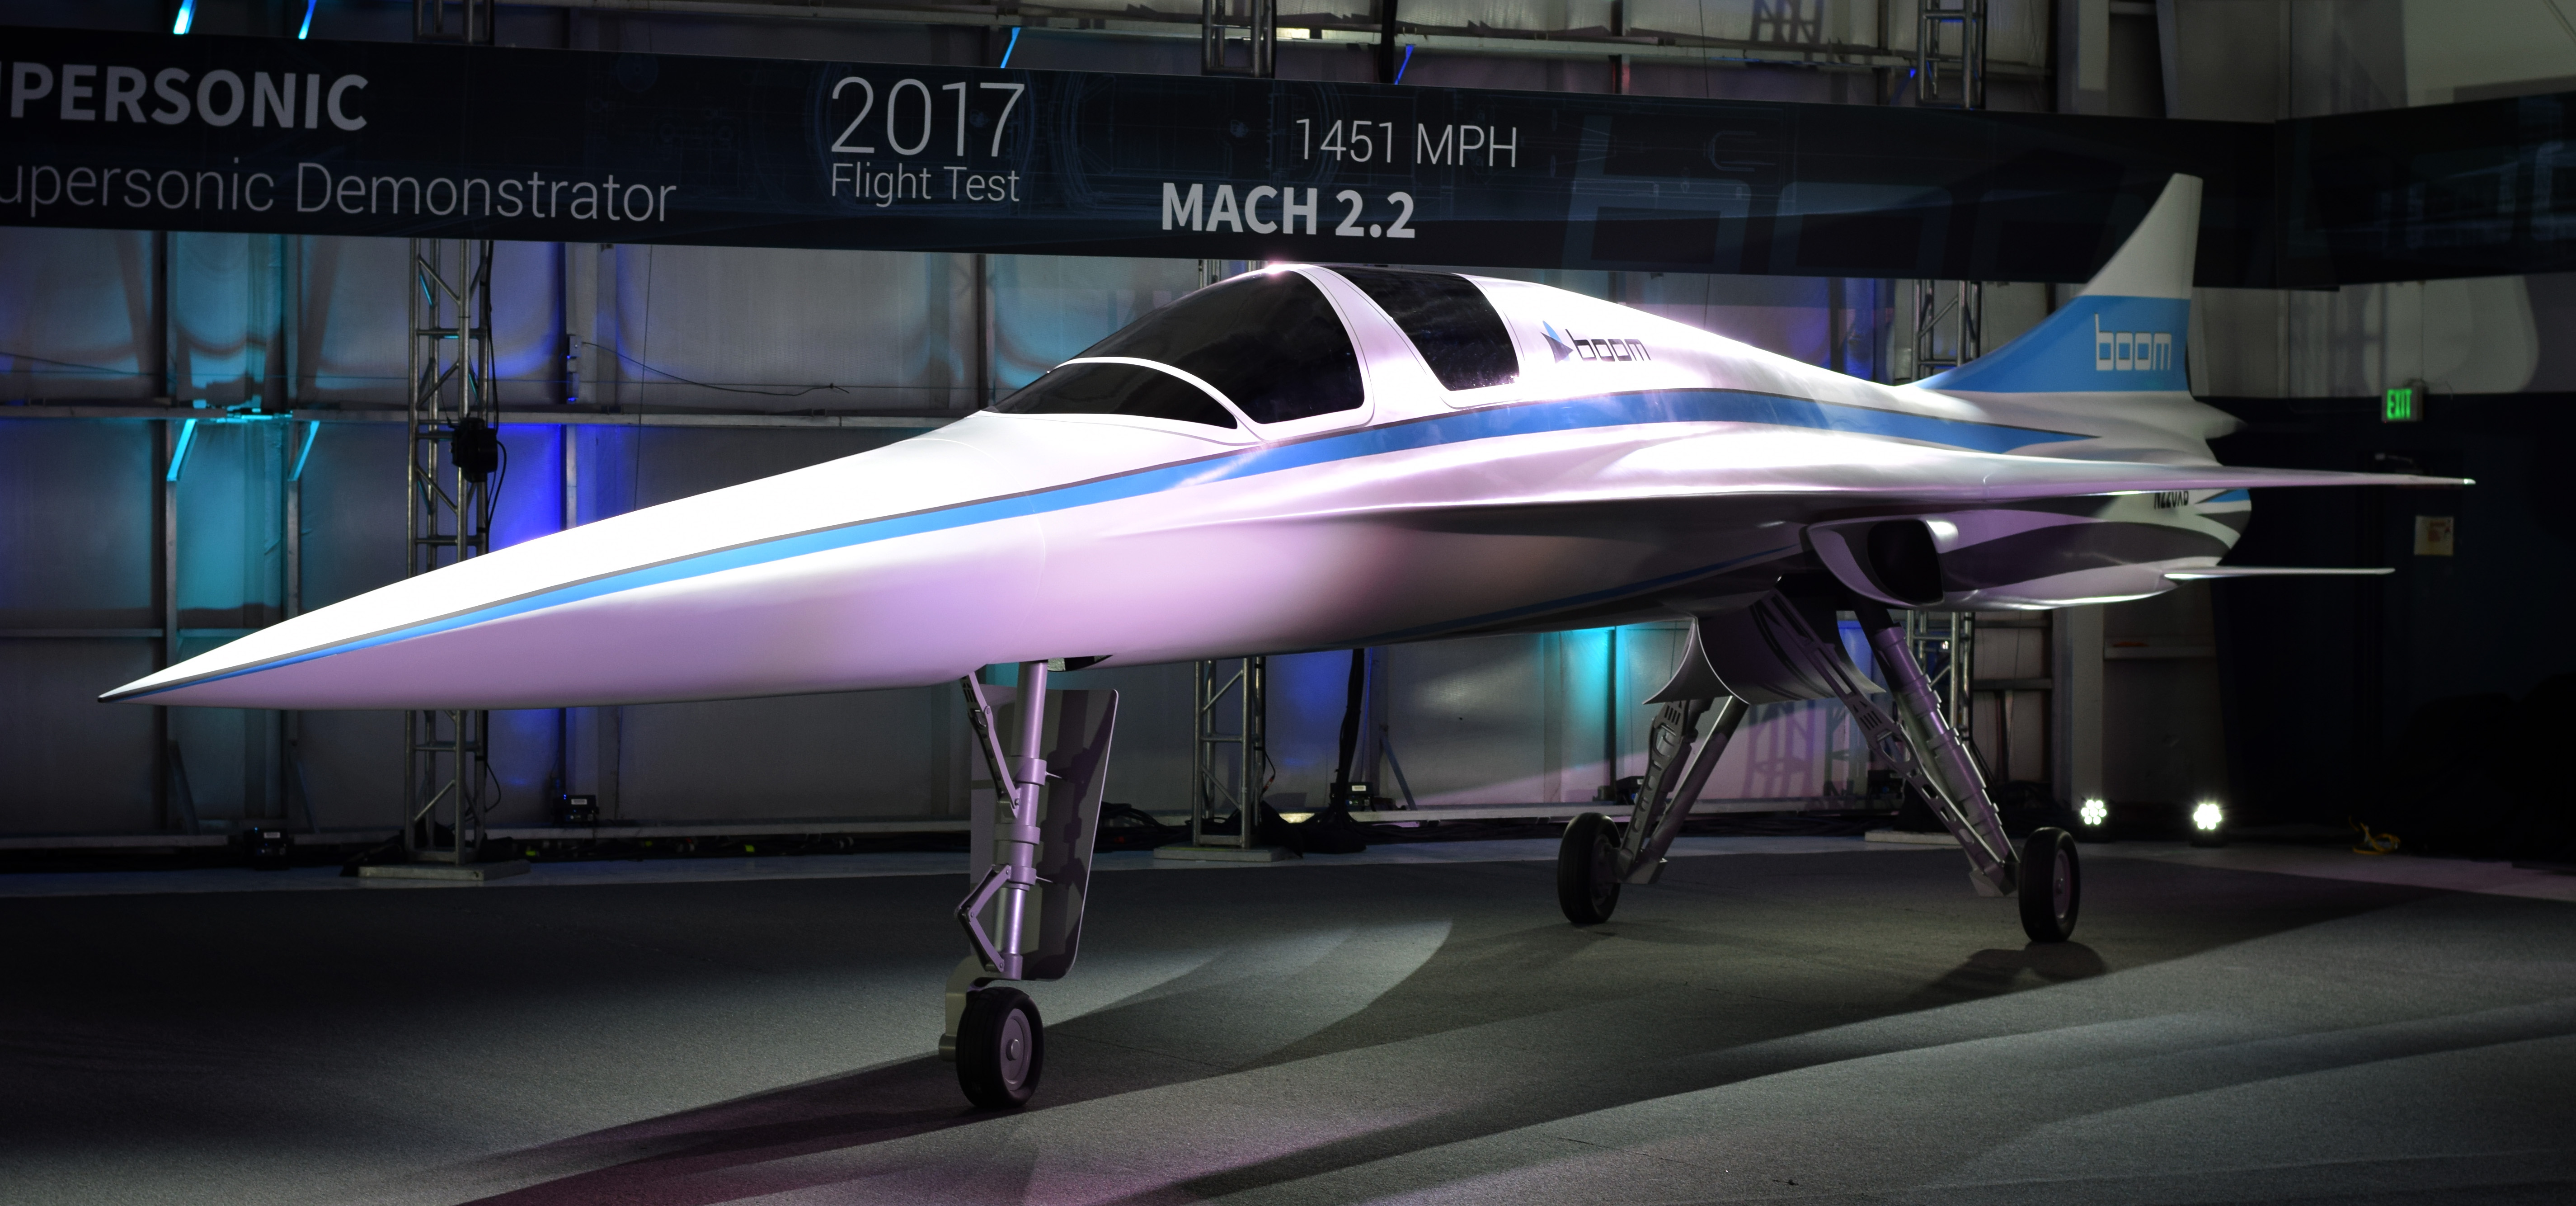 With the recent advances in technology and design aircraft concepts - How New Technology Could Make Supersonic Flight Viable Again